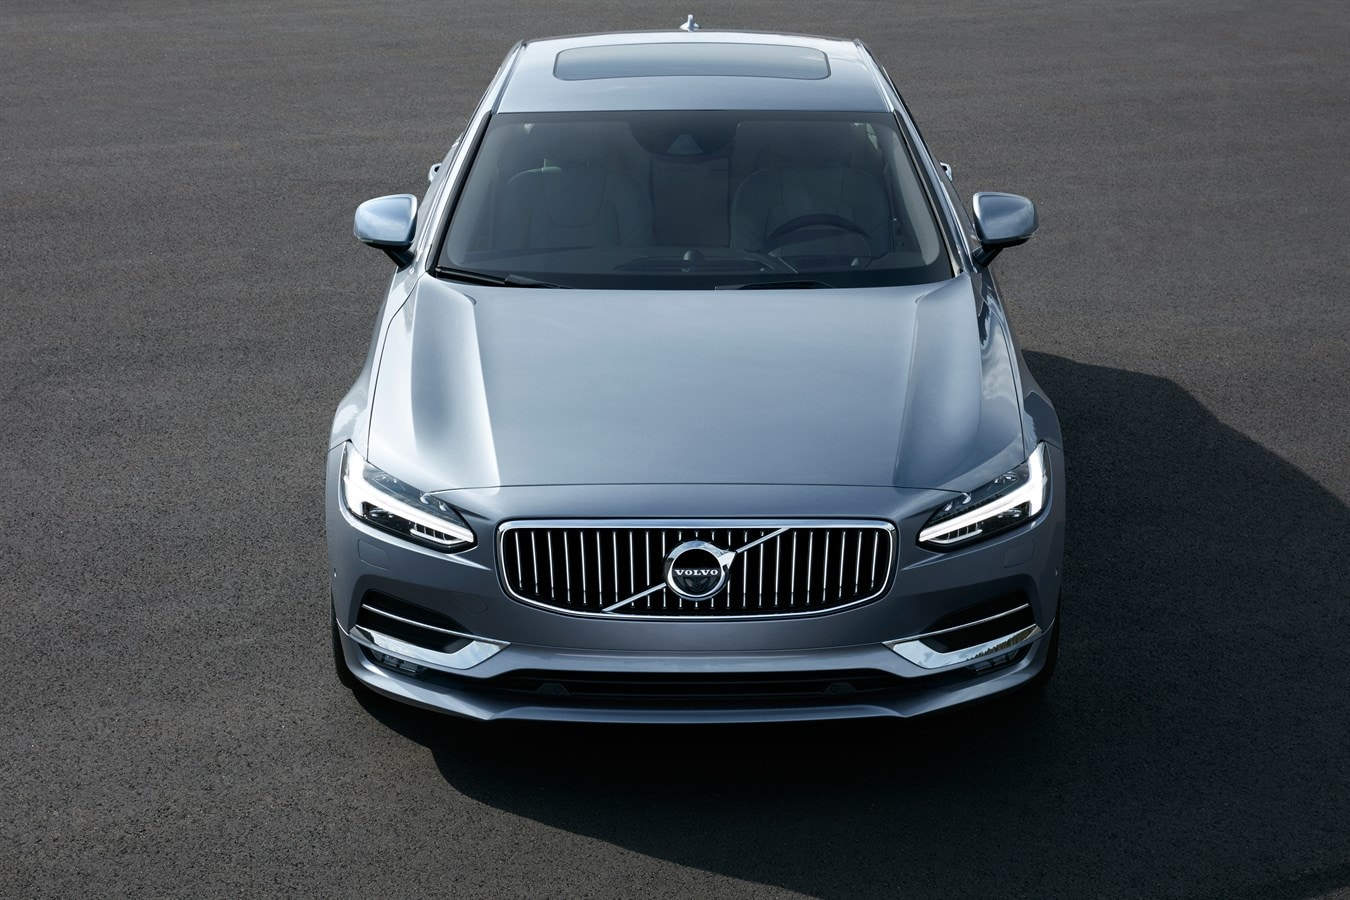 2019 Volvo S90 Bergen County NJ